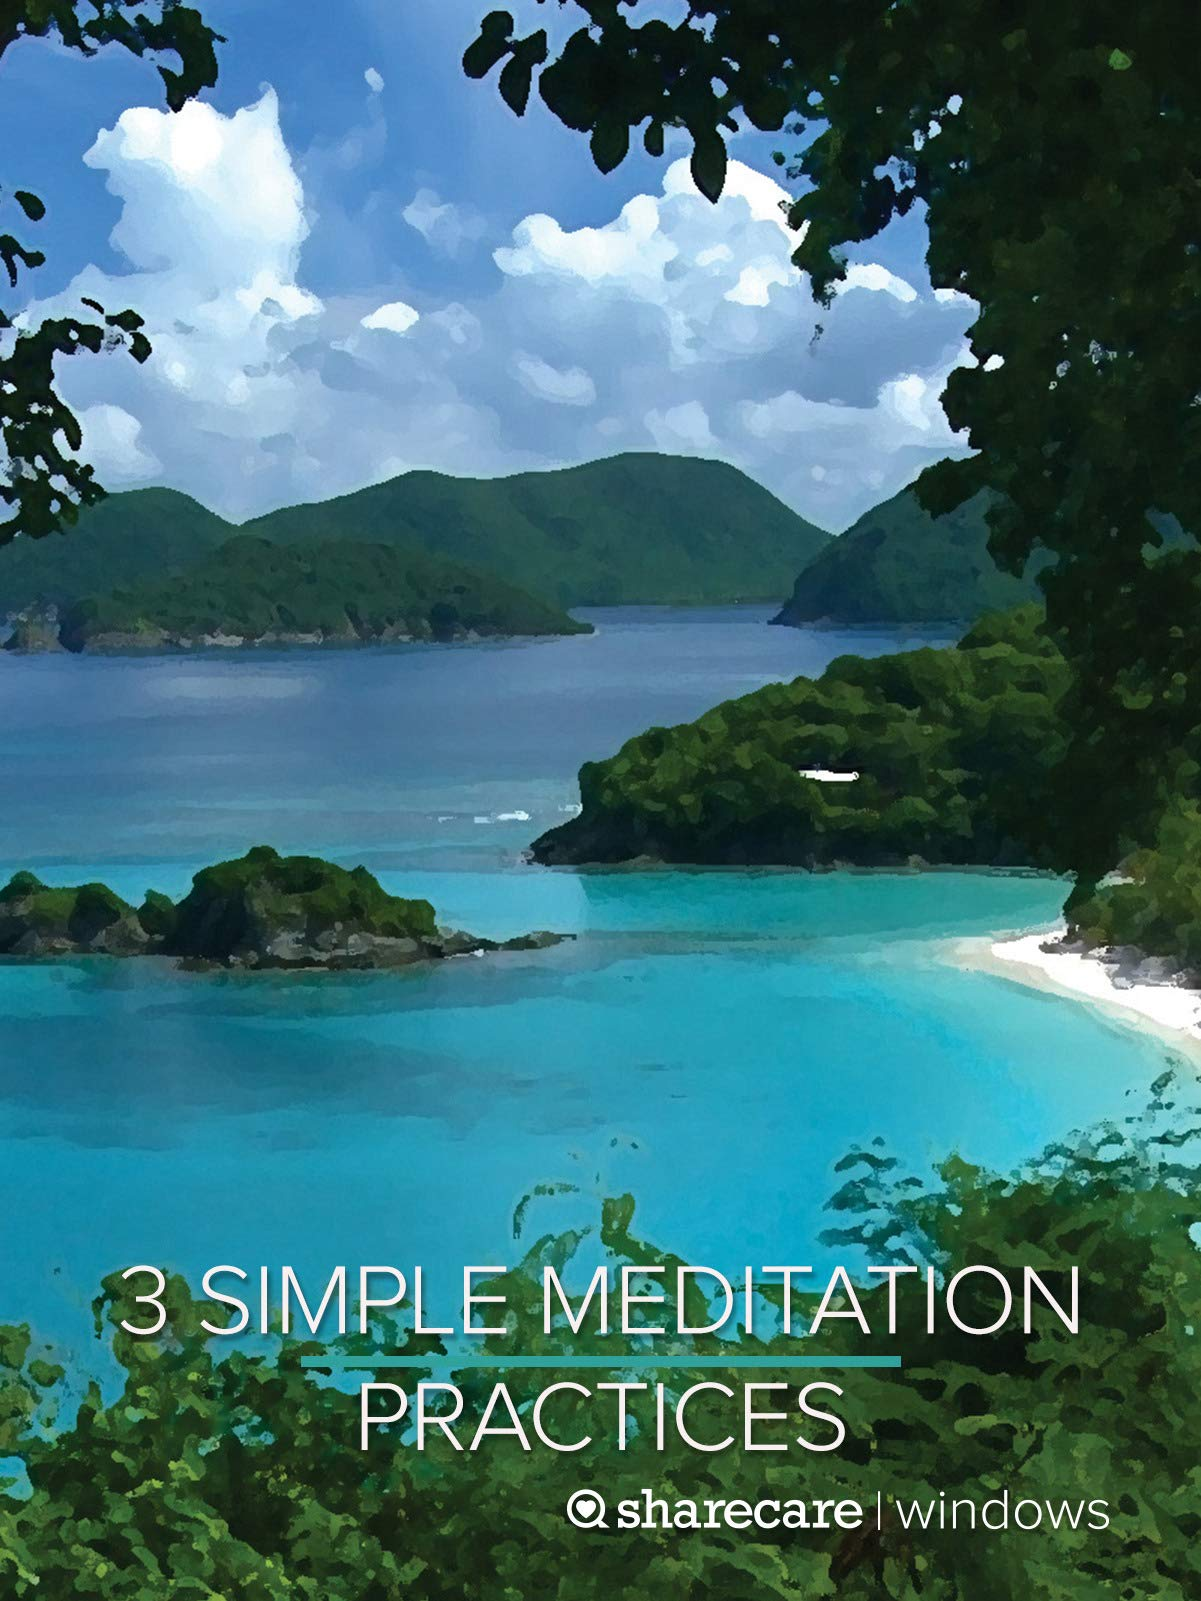 3 Simple Meditation Practices